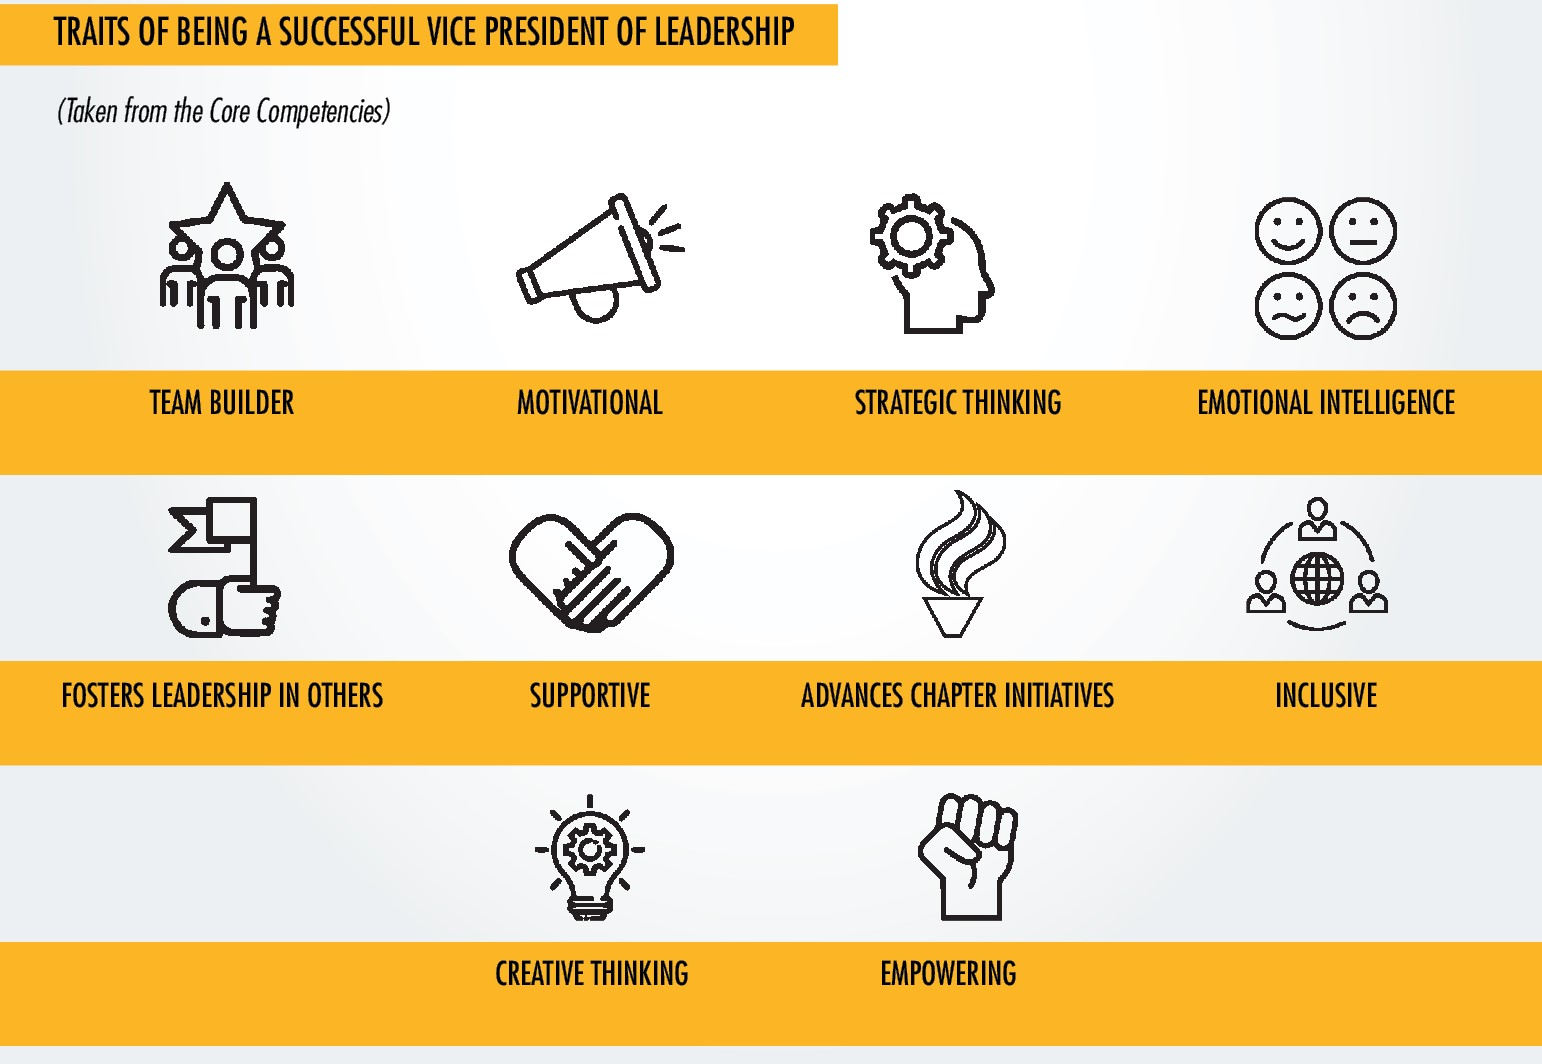 traits of a successful vp of leadership are: team builder, motivational, strategic thinking, emotional intelligence, fosters leadership in others, supportive, advances chapter initiatives, inclusive, creative thinking and empowering